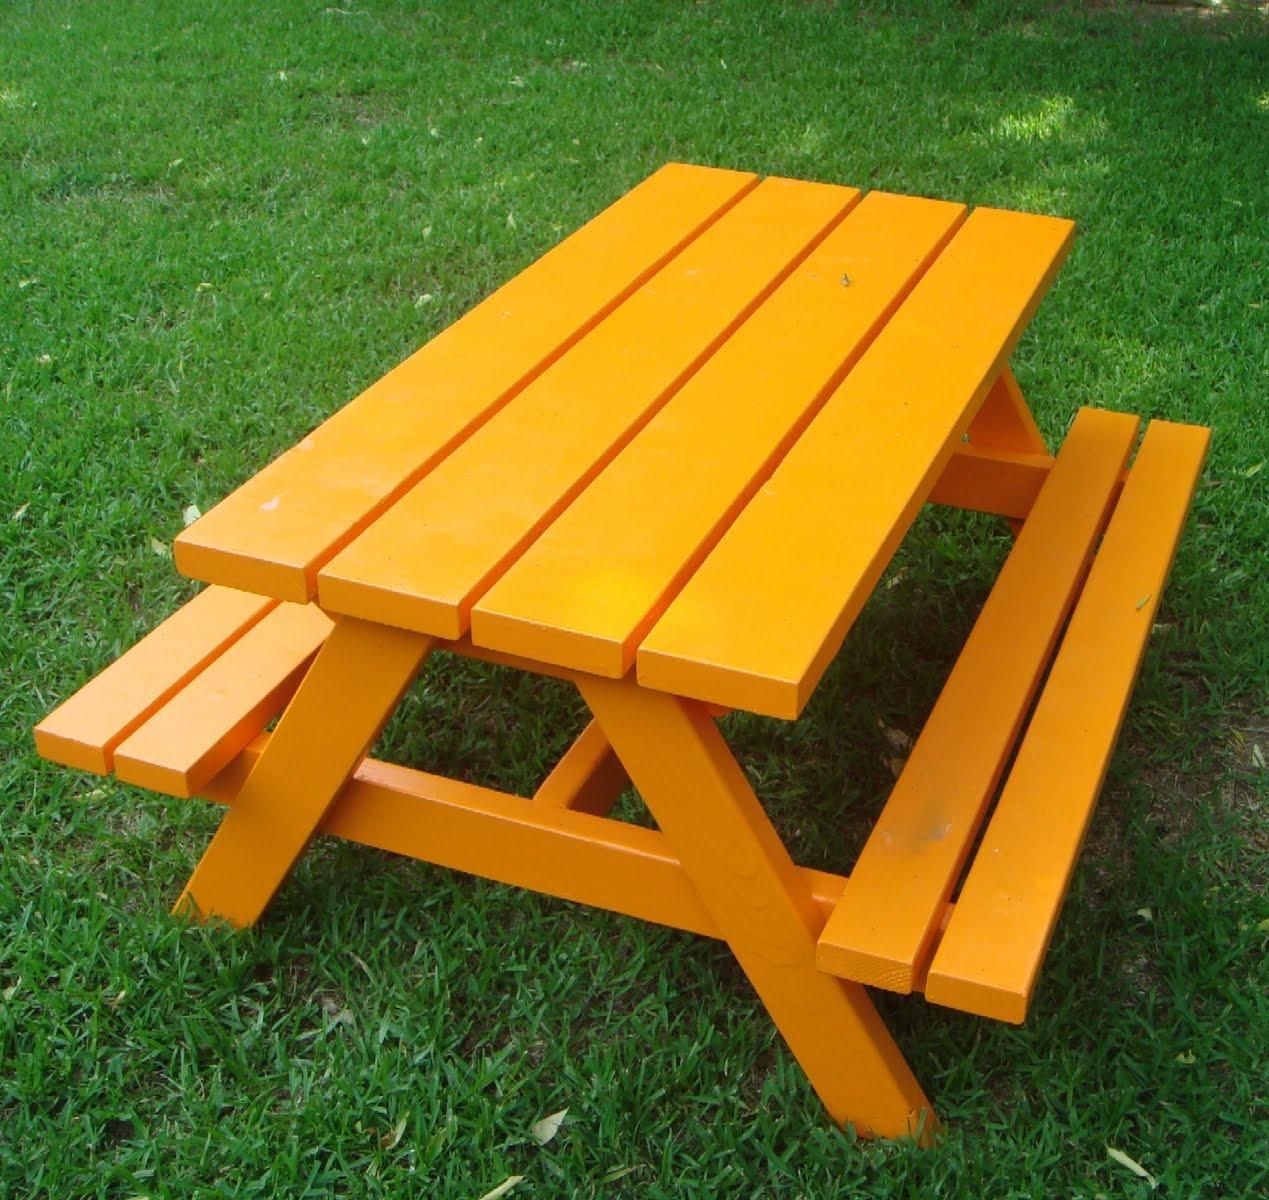 Ana White Build A Bigger Kid 39 S Picnic Table Diy Projects